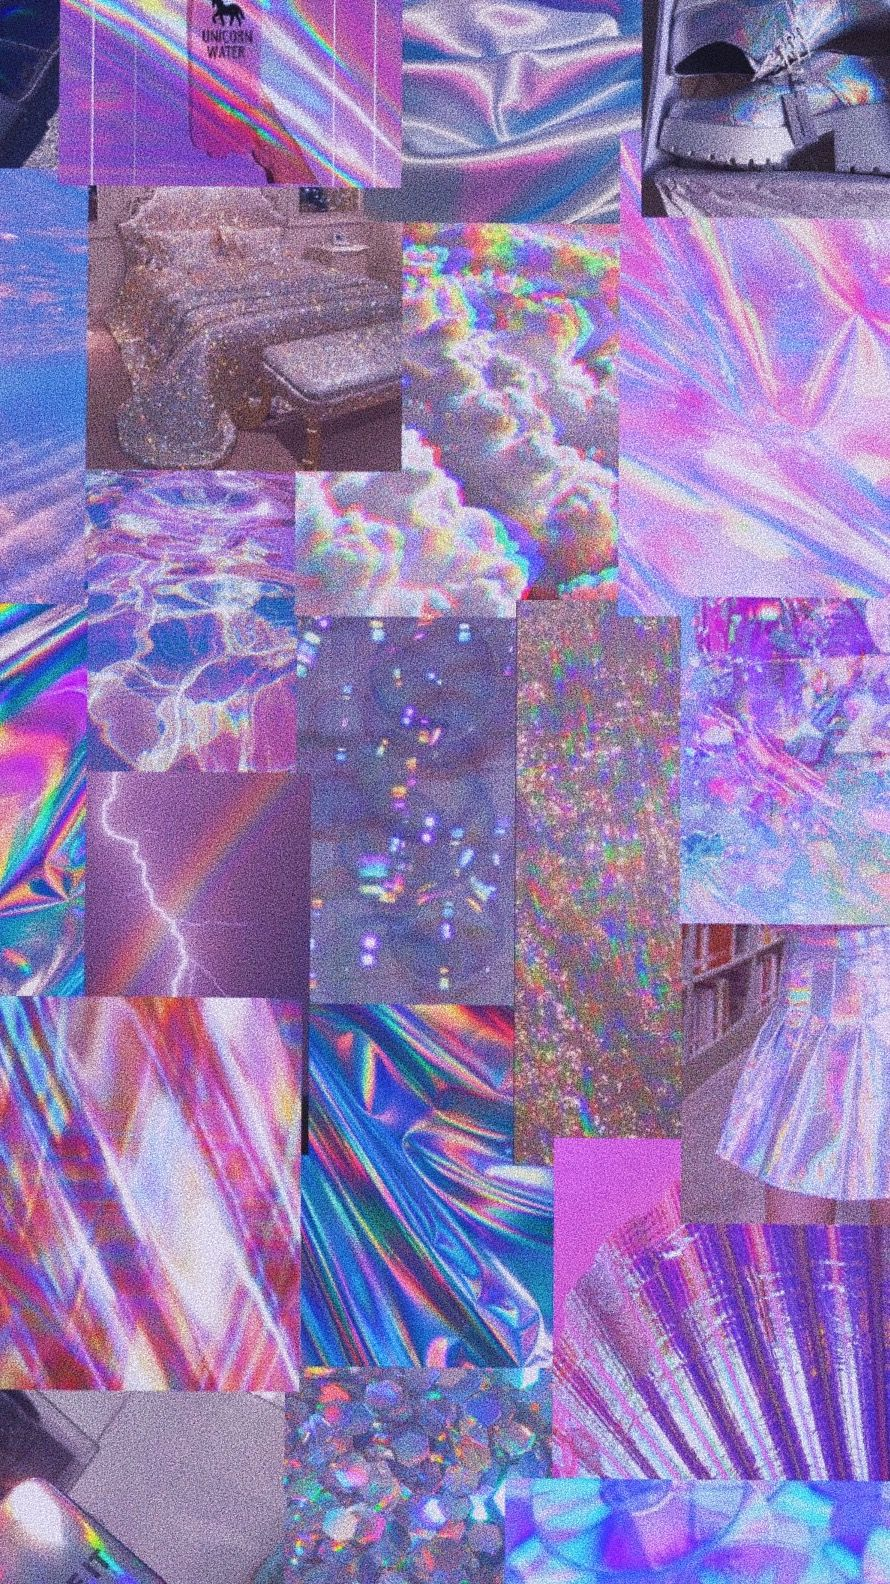 Holographic Wallpaper Aesthetic Holographic Wallpapers Aesthetic Iphone Wallpaper Purple Wallpaper